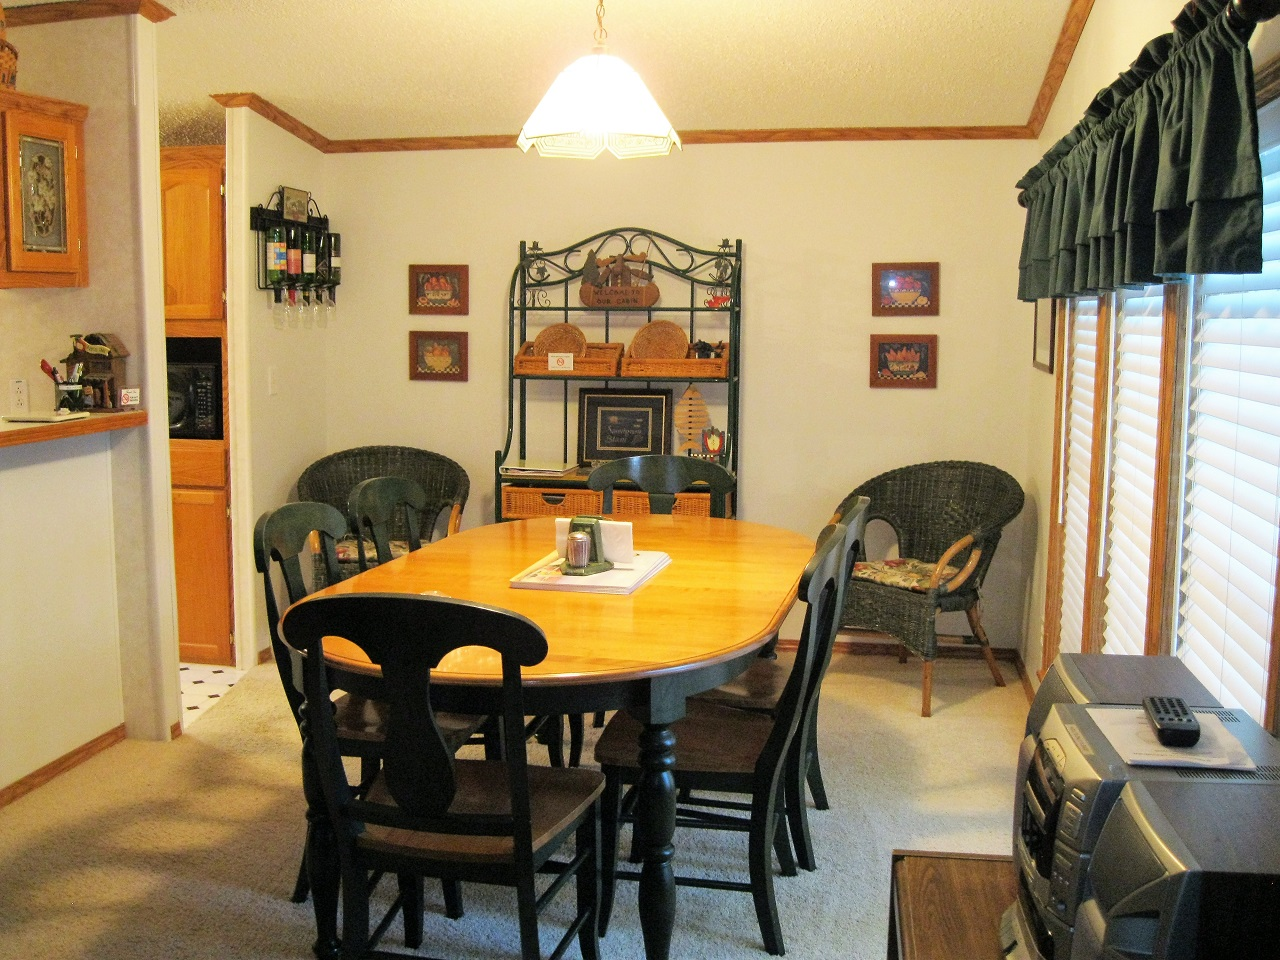 7 Seminole dining room